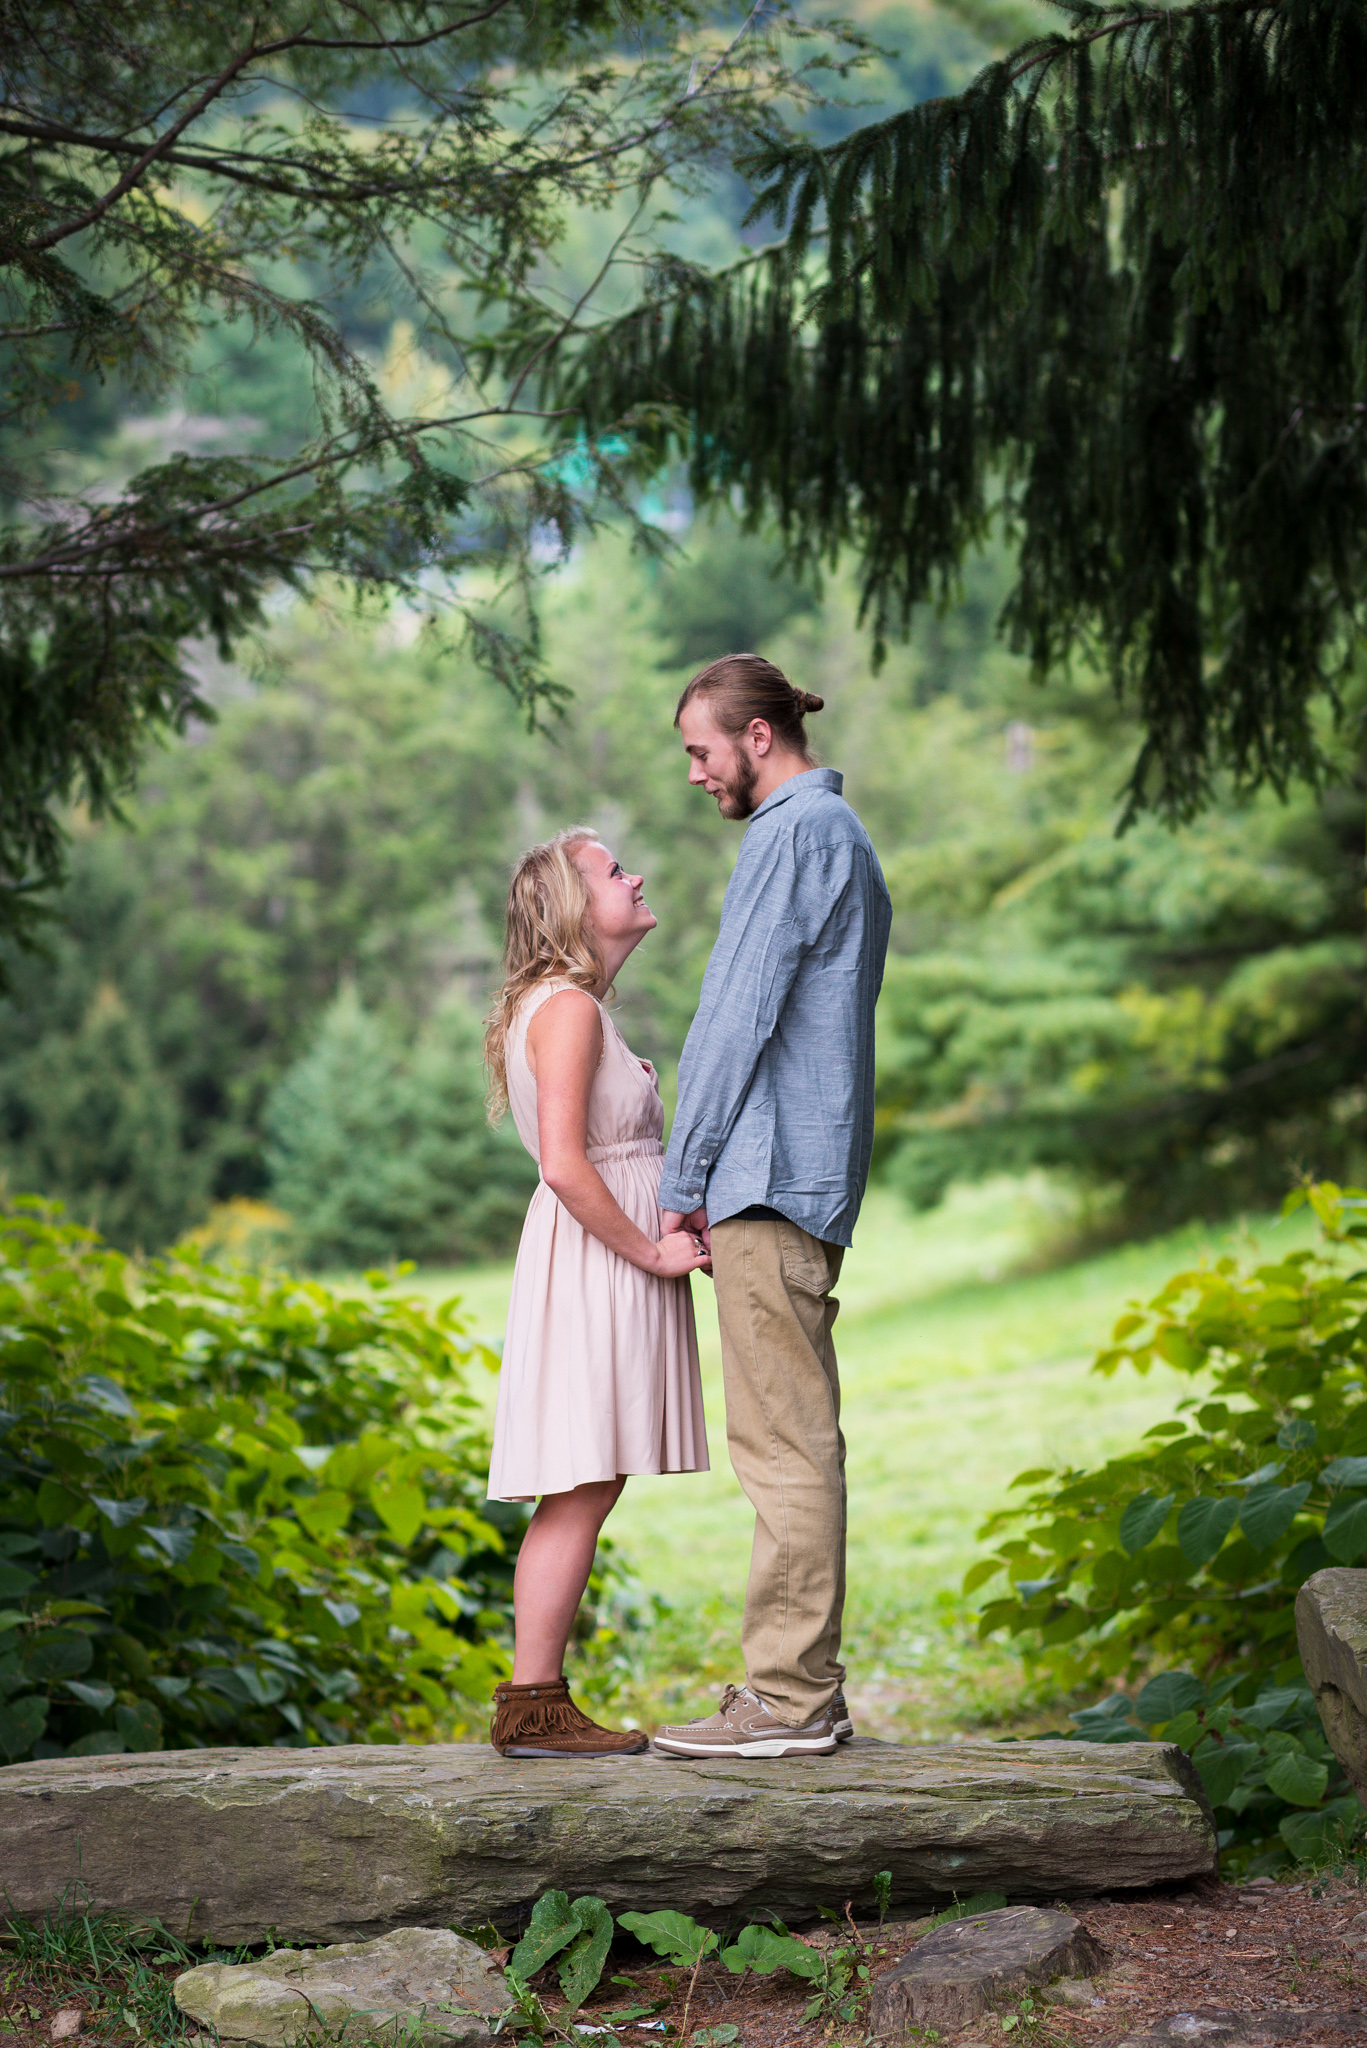 Elk-mountain-wedding-engagement-photography-uniondale-susquehanna-county-steven-serge-photography-2.jpg